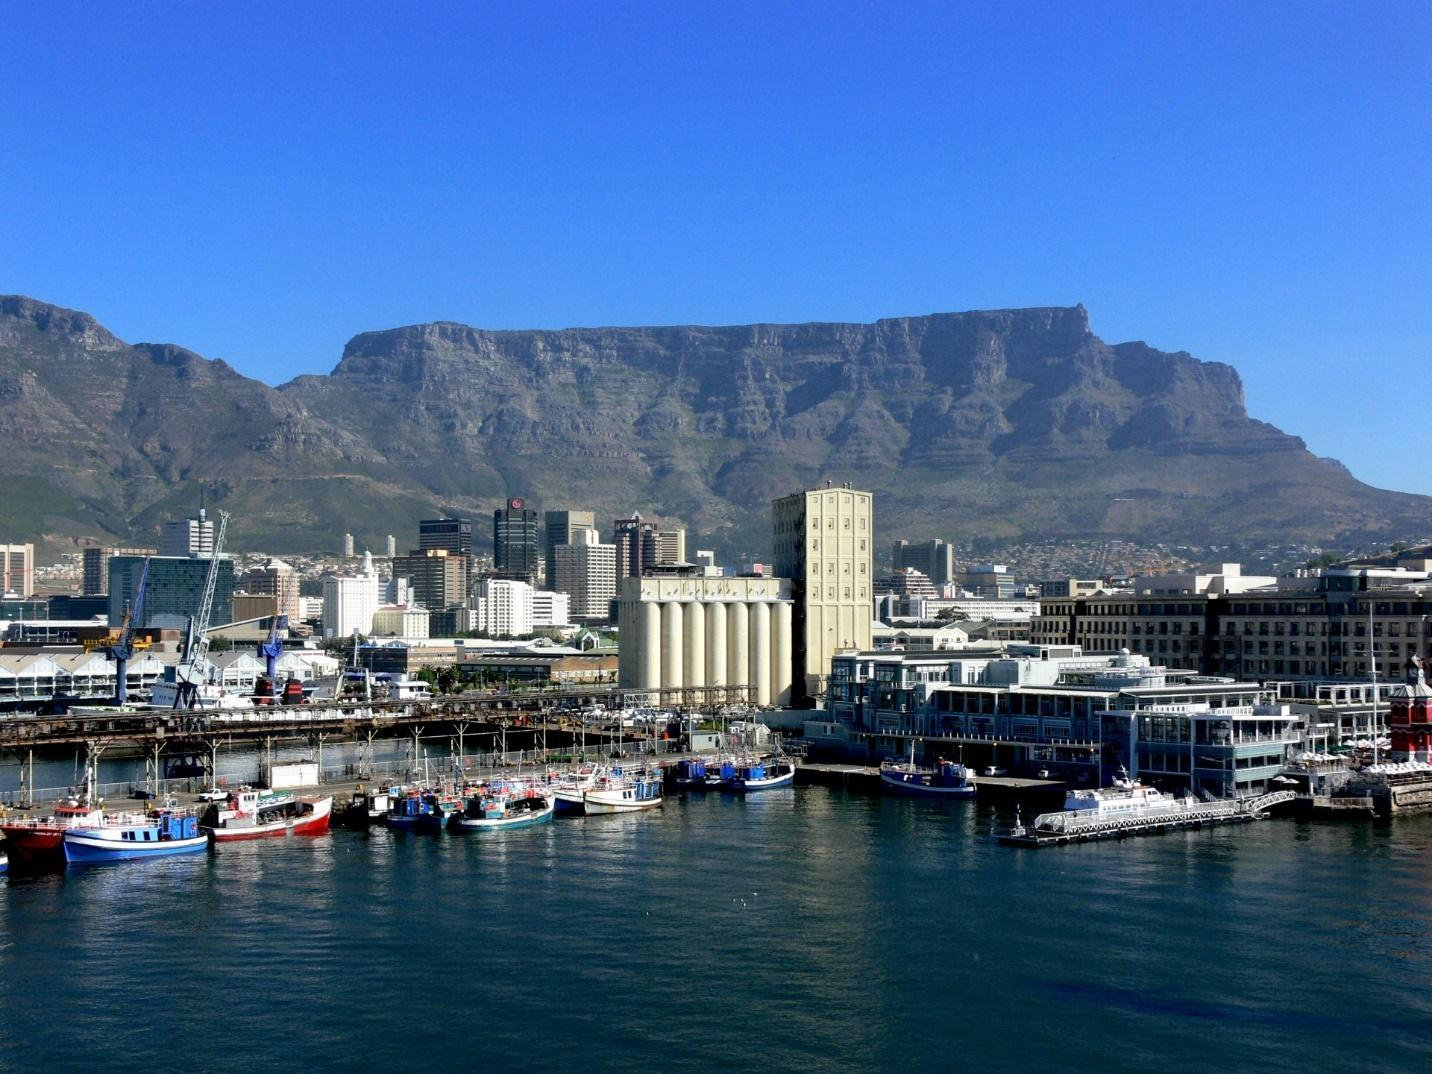 Cape Town V and A Waterfront